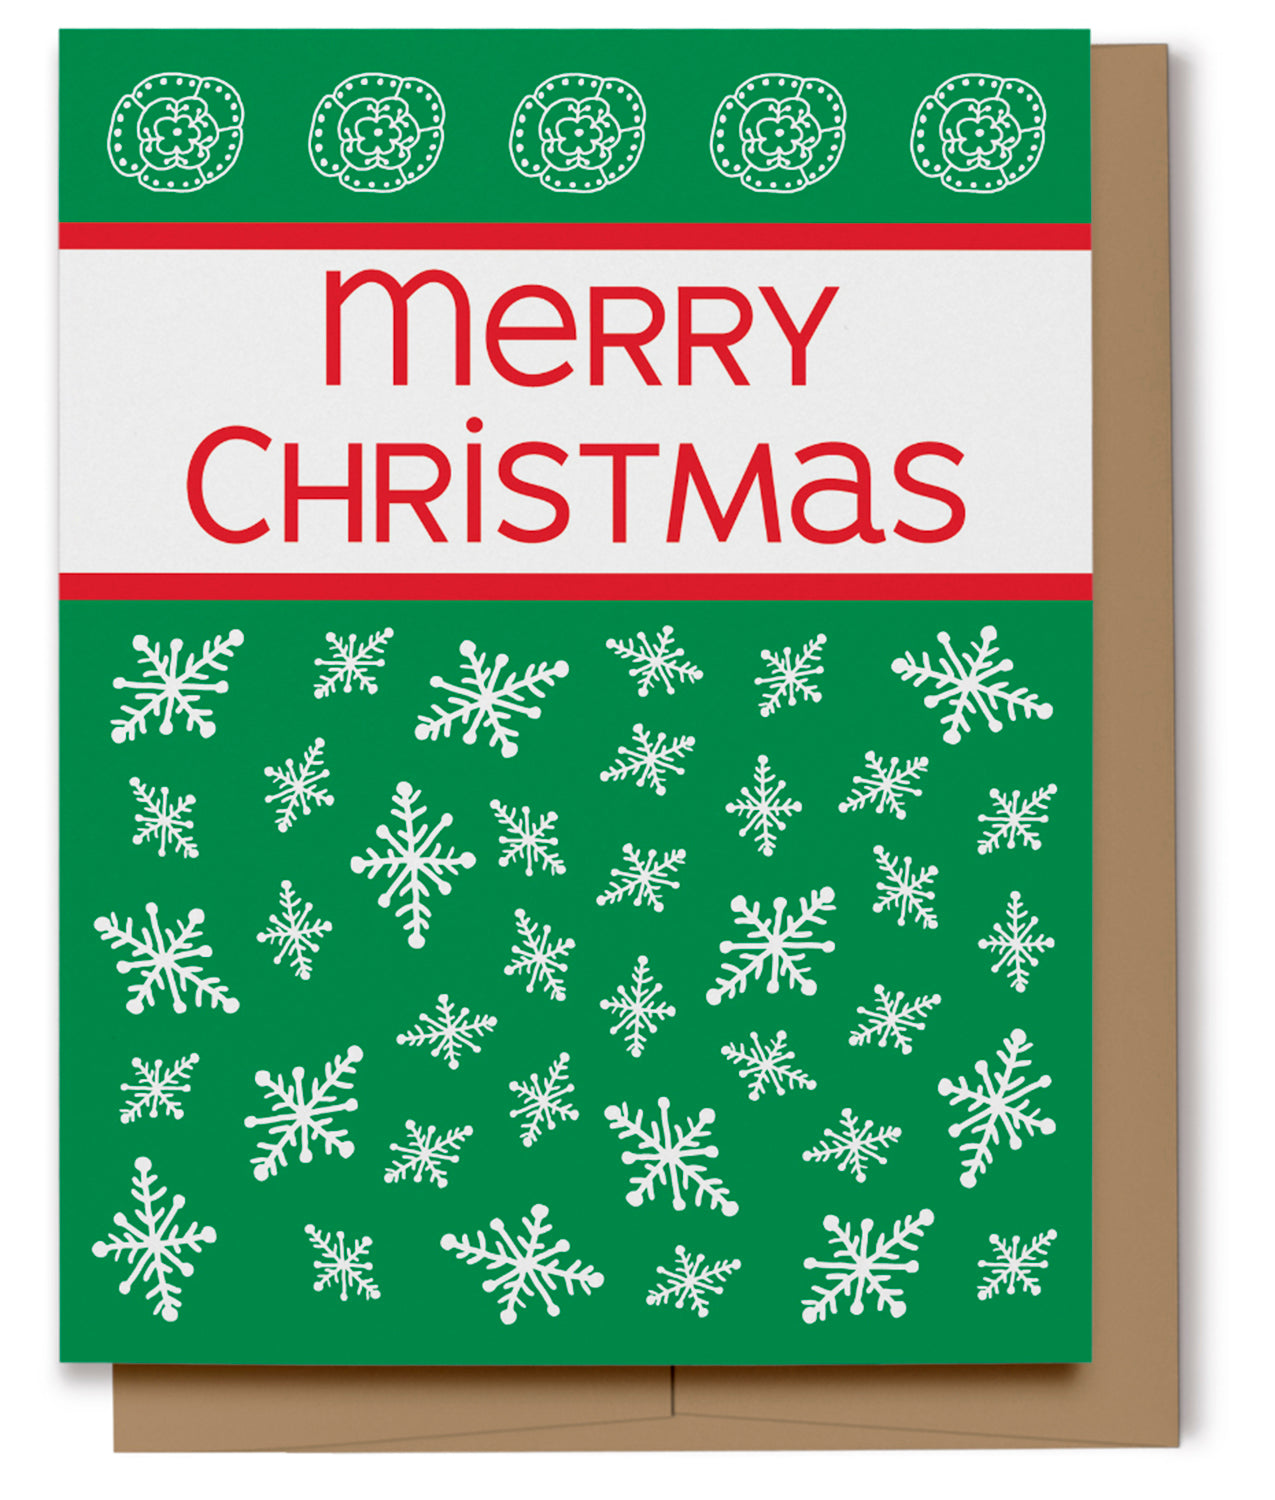 Merry Christmas Card - Green (100% Recycled)